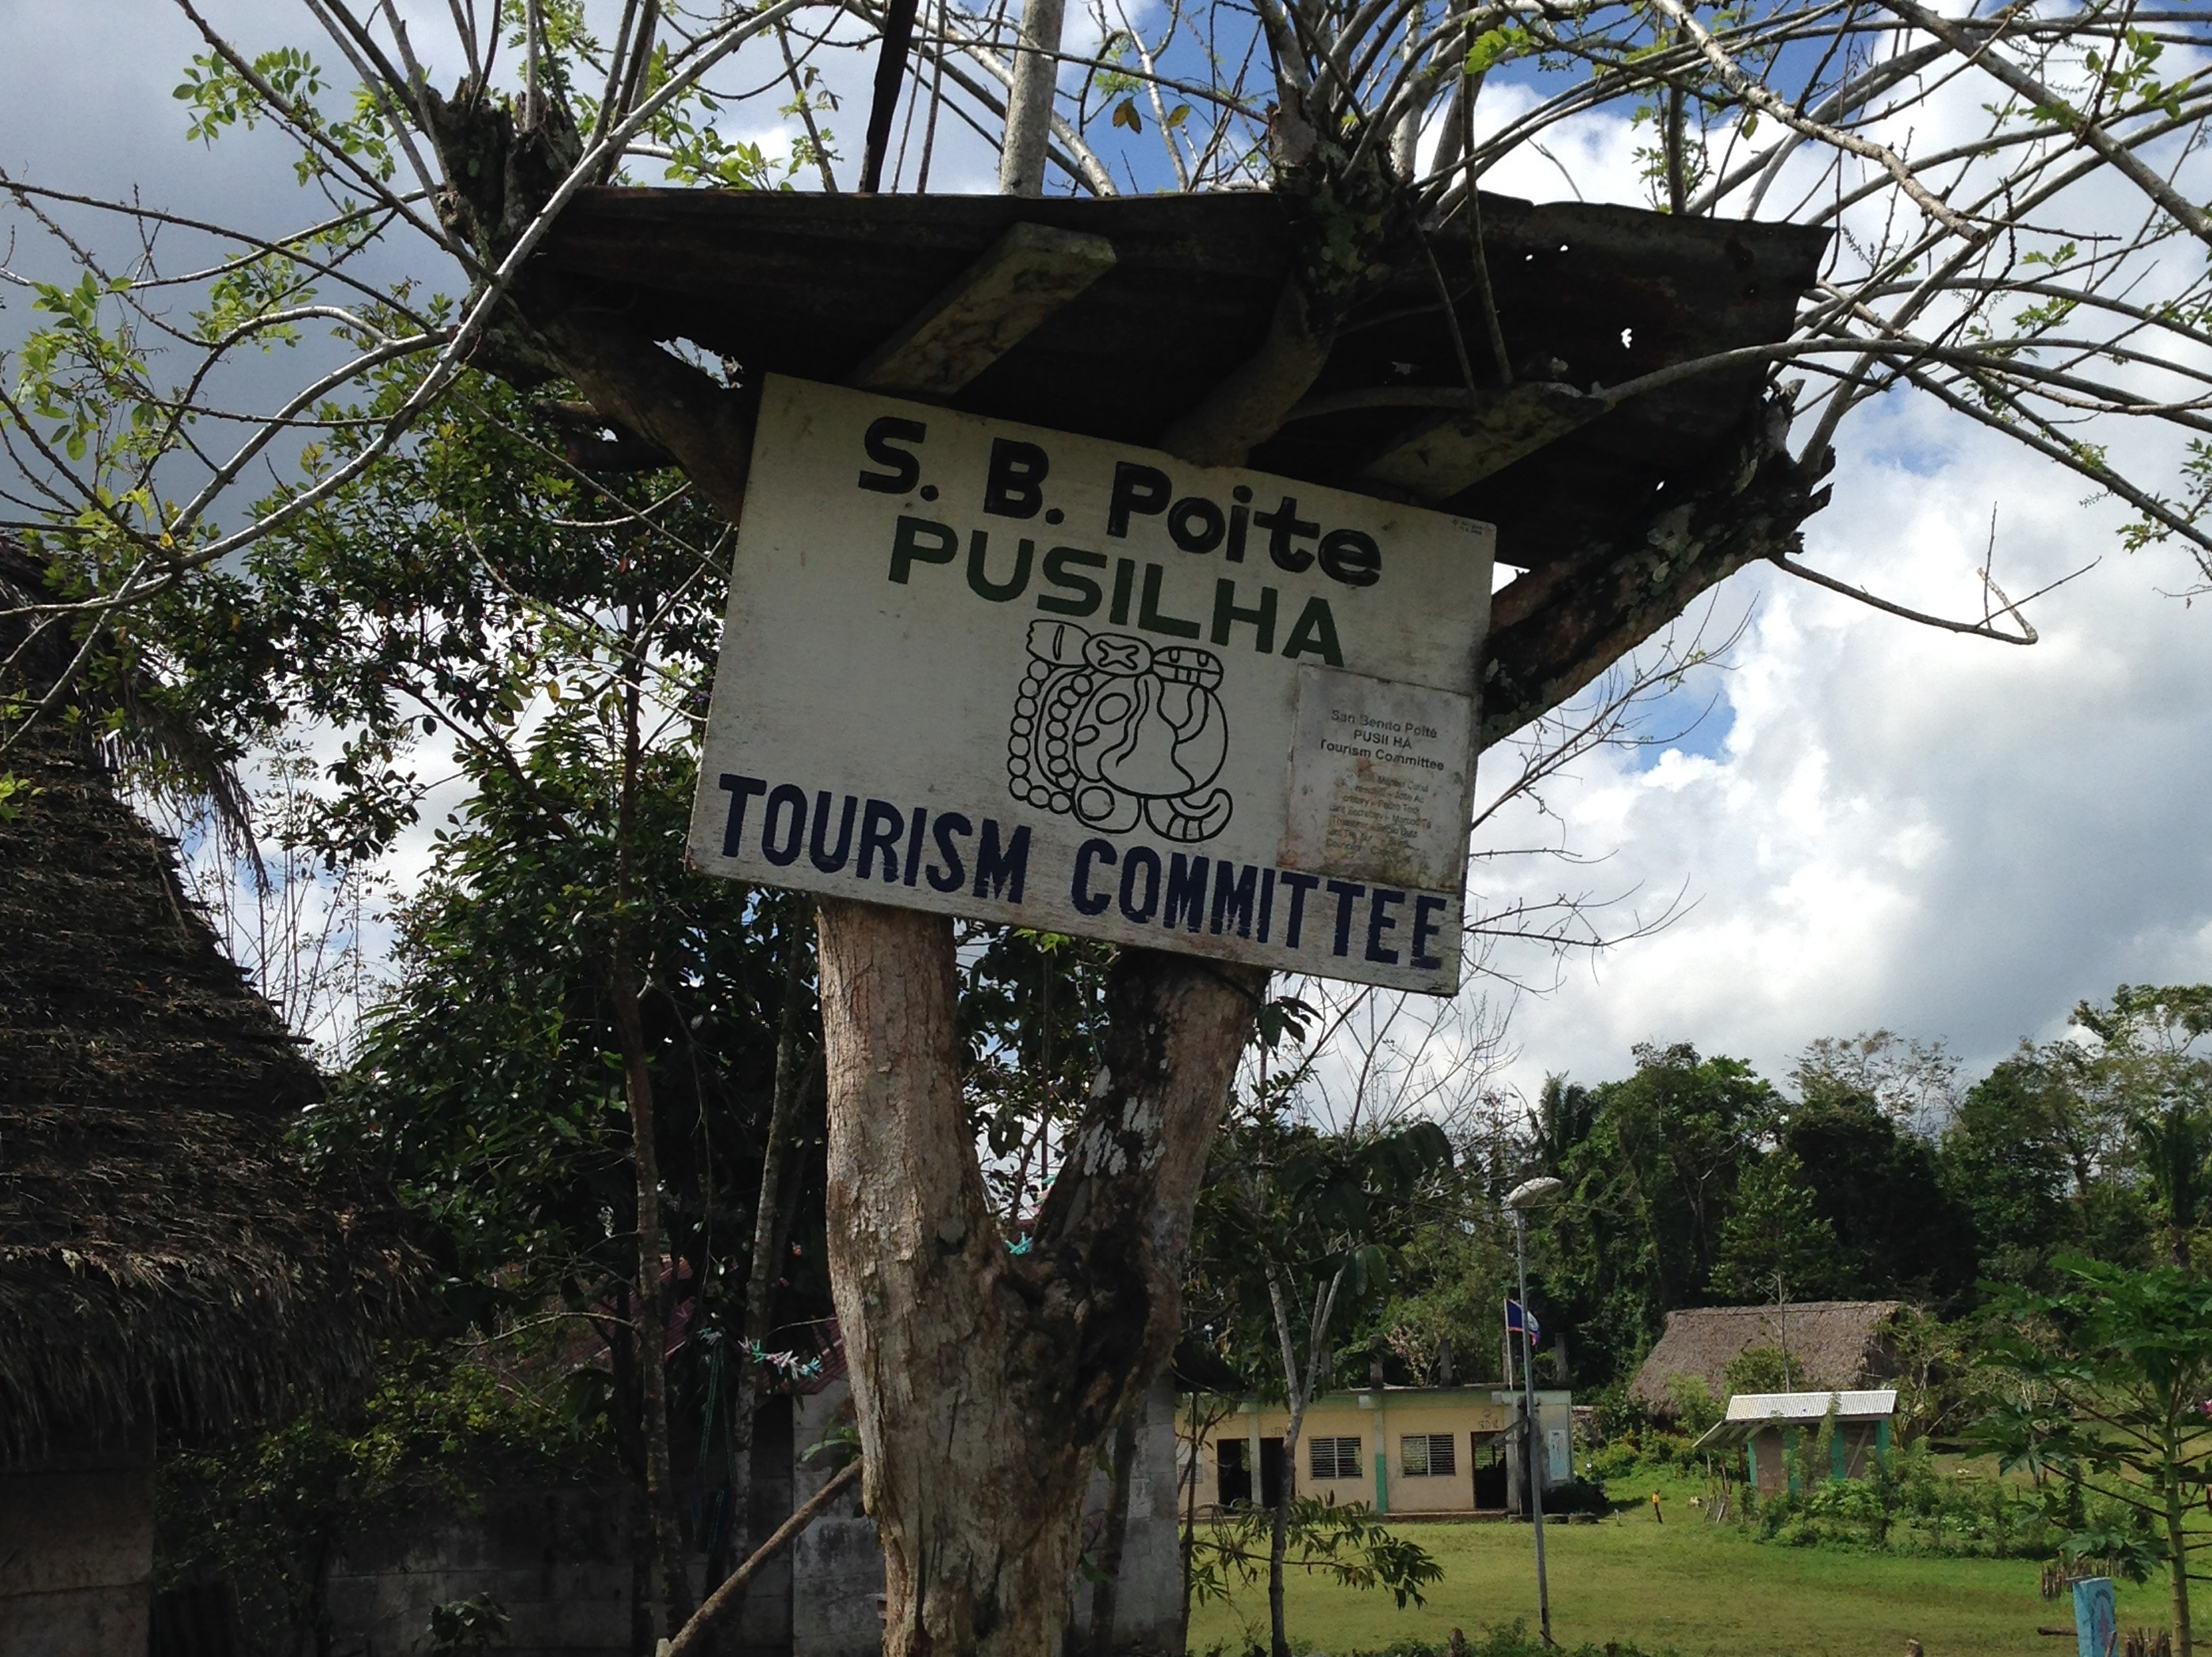 pusilha tourism committee